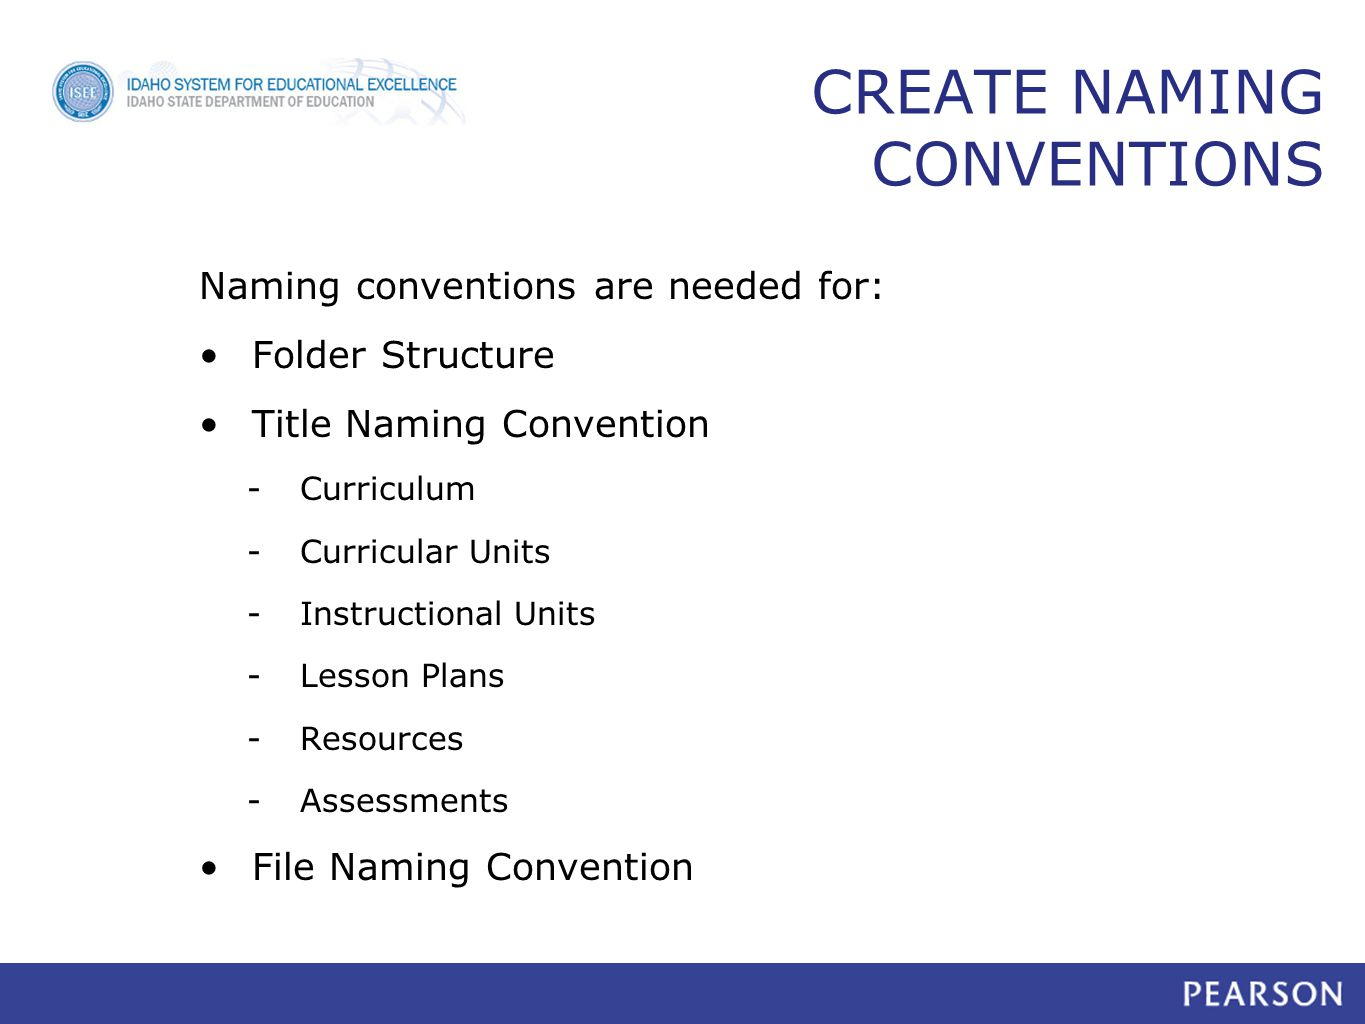 CREATE NAMING CONVENTIONS Naming conventions are needed for: Folder Structure Title Naming Convention -Curriculum -Curricular Units -Instructional Units -Lesson Plans -Resources -Assessments File Naming Convention 17